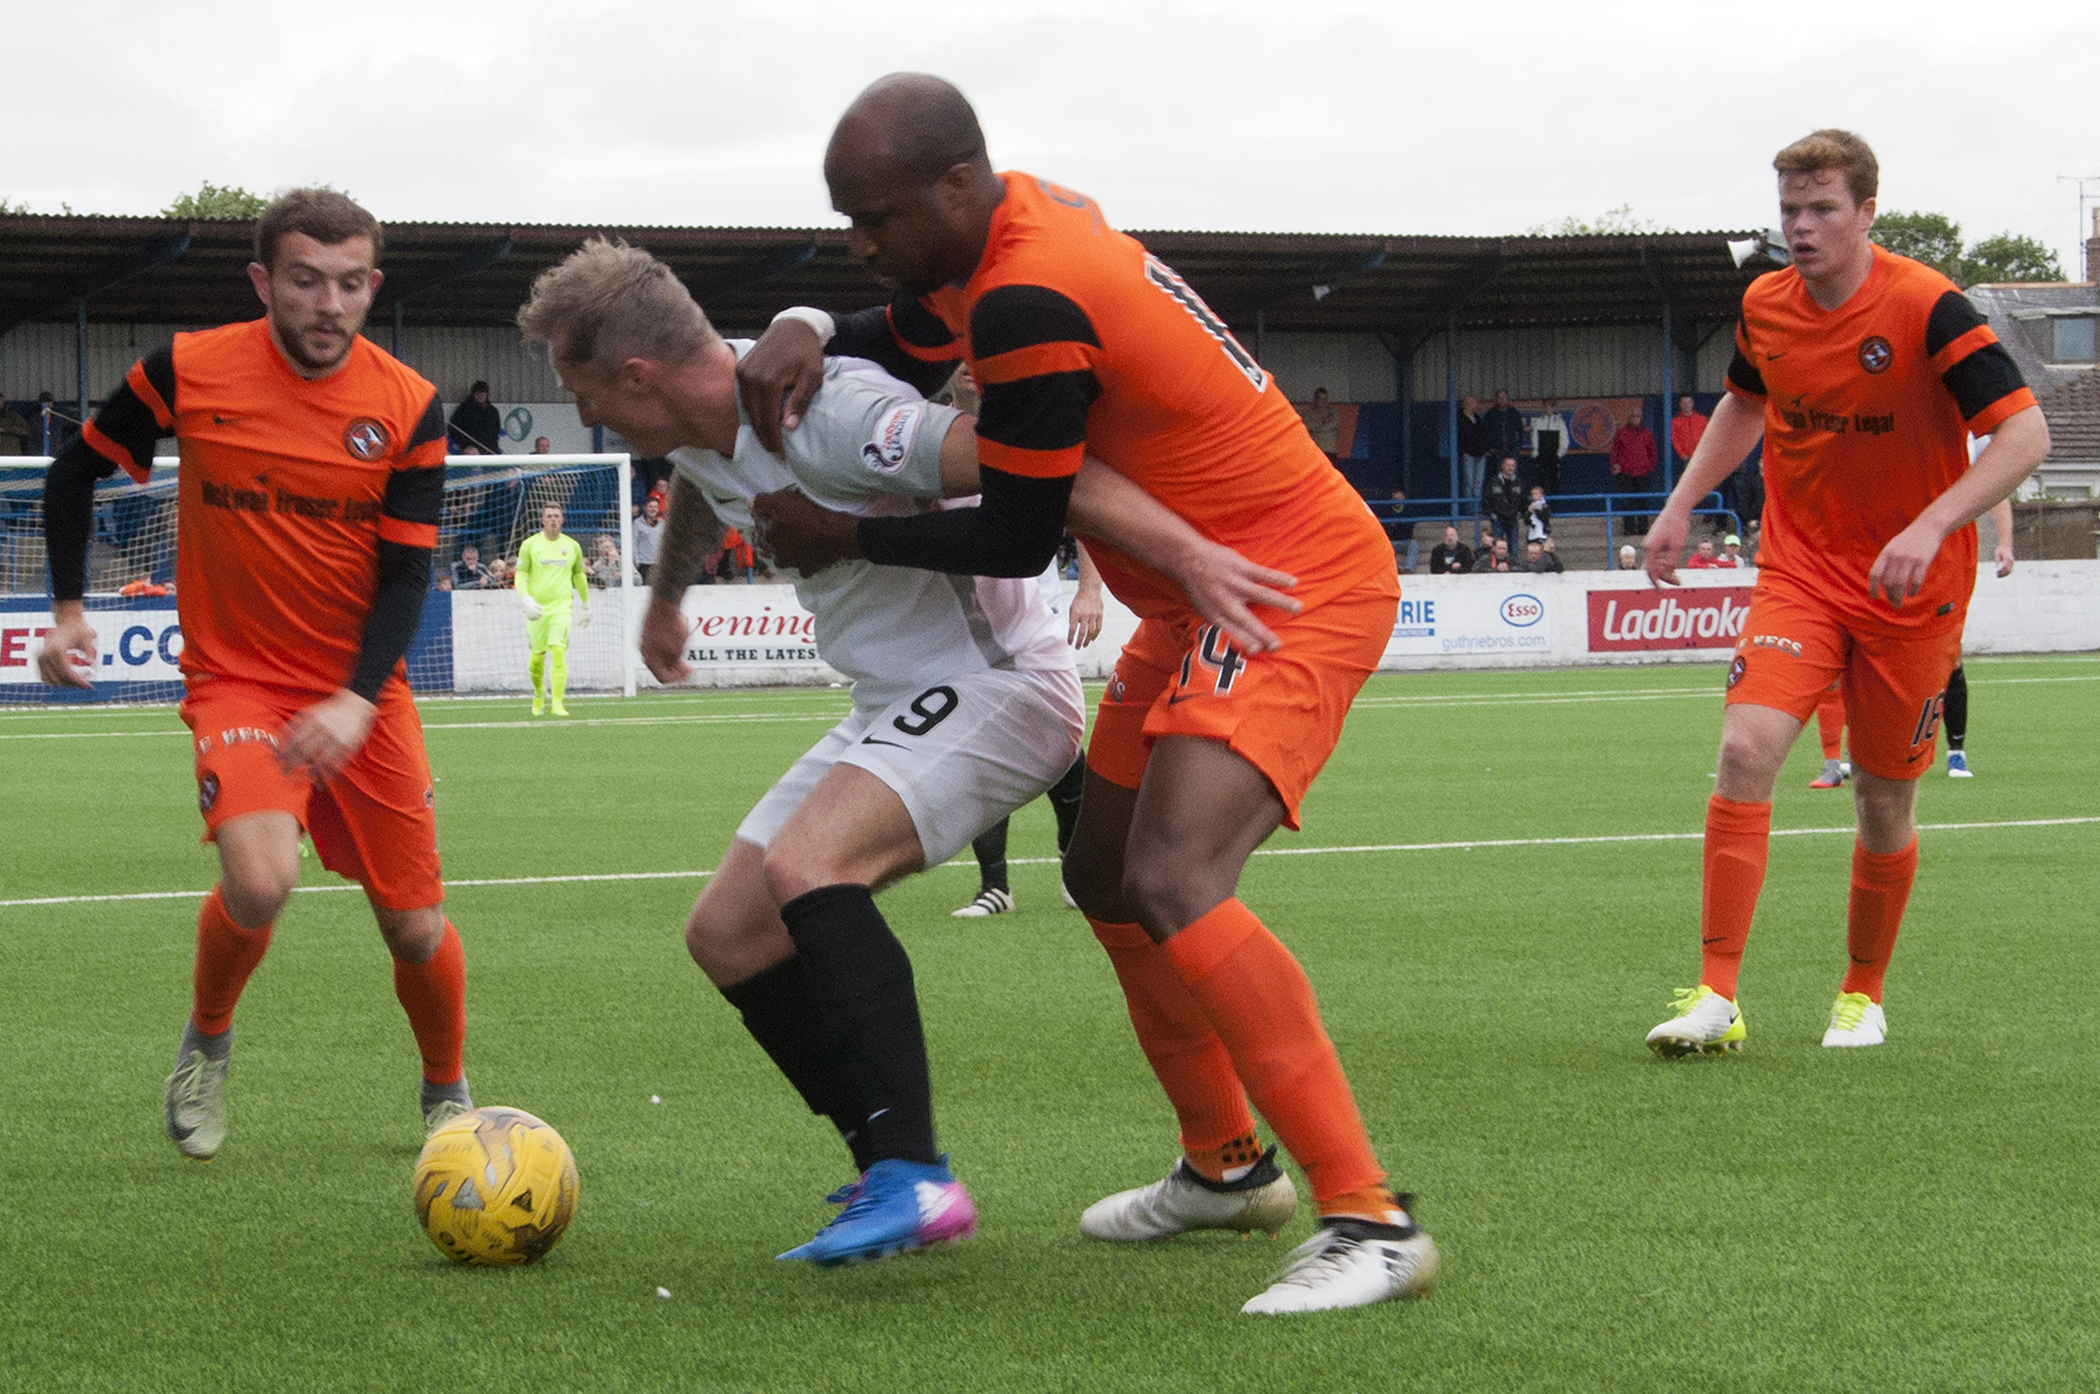 United's William Edjenguele jostles for the ball at Links Park. Picture by Paul Smith